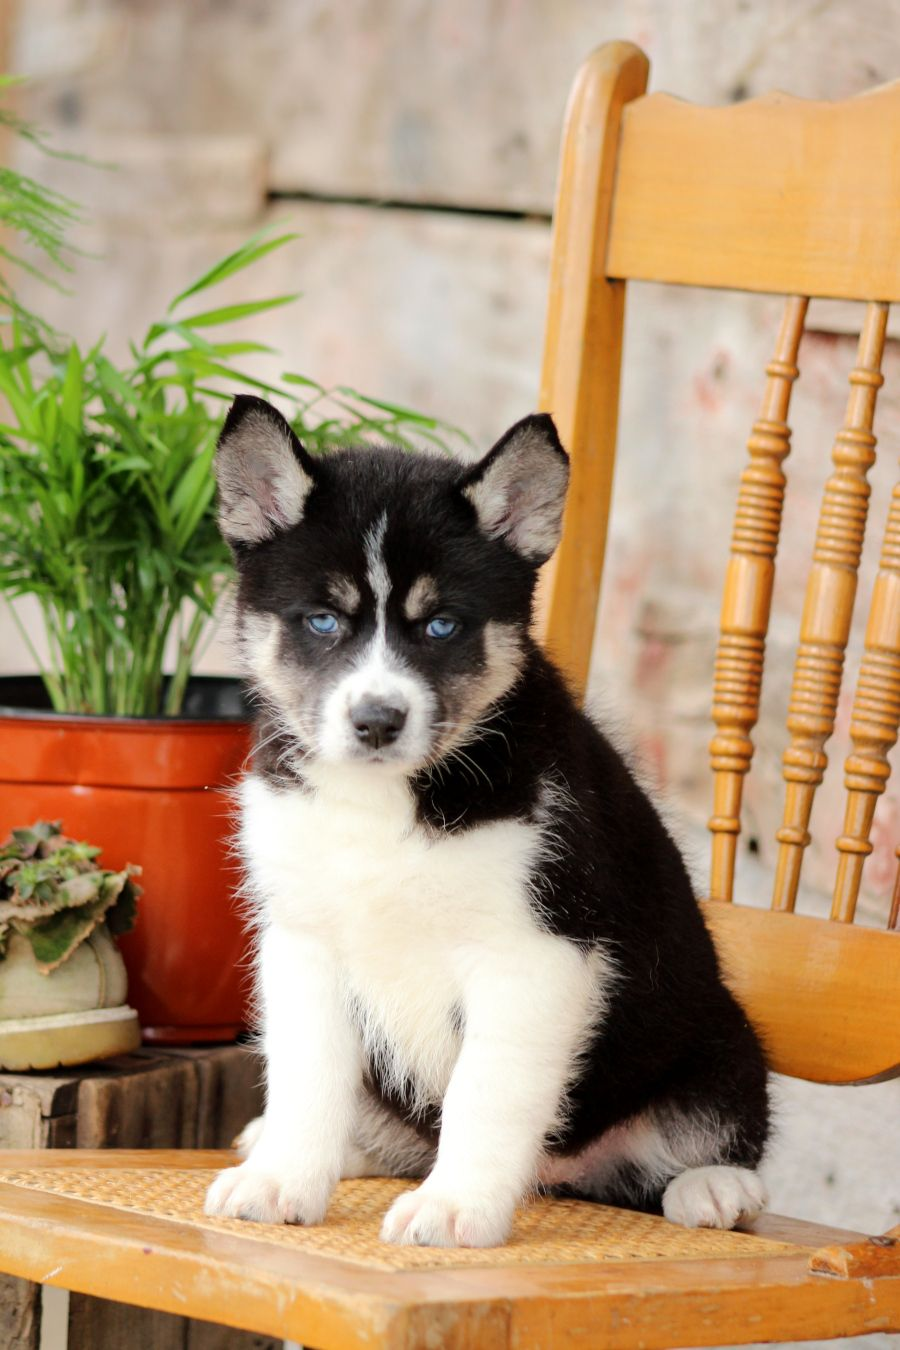 Pin By Ilovefood On Puppies Pomsky Puppies Pomsky Puppies For Sale Puppies